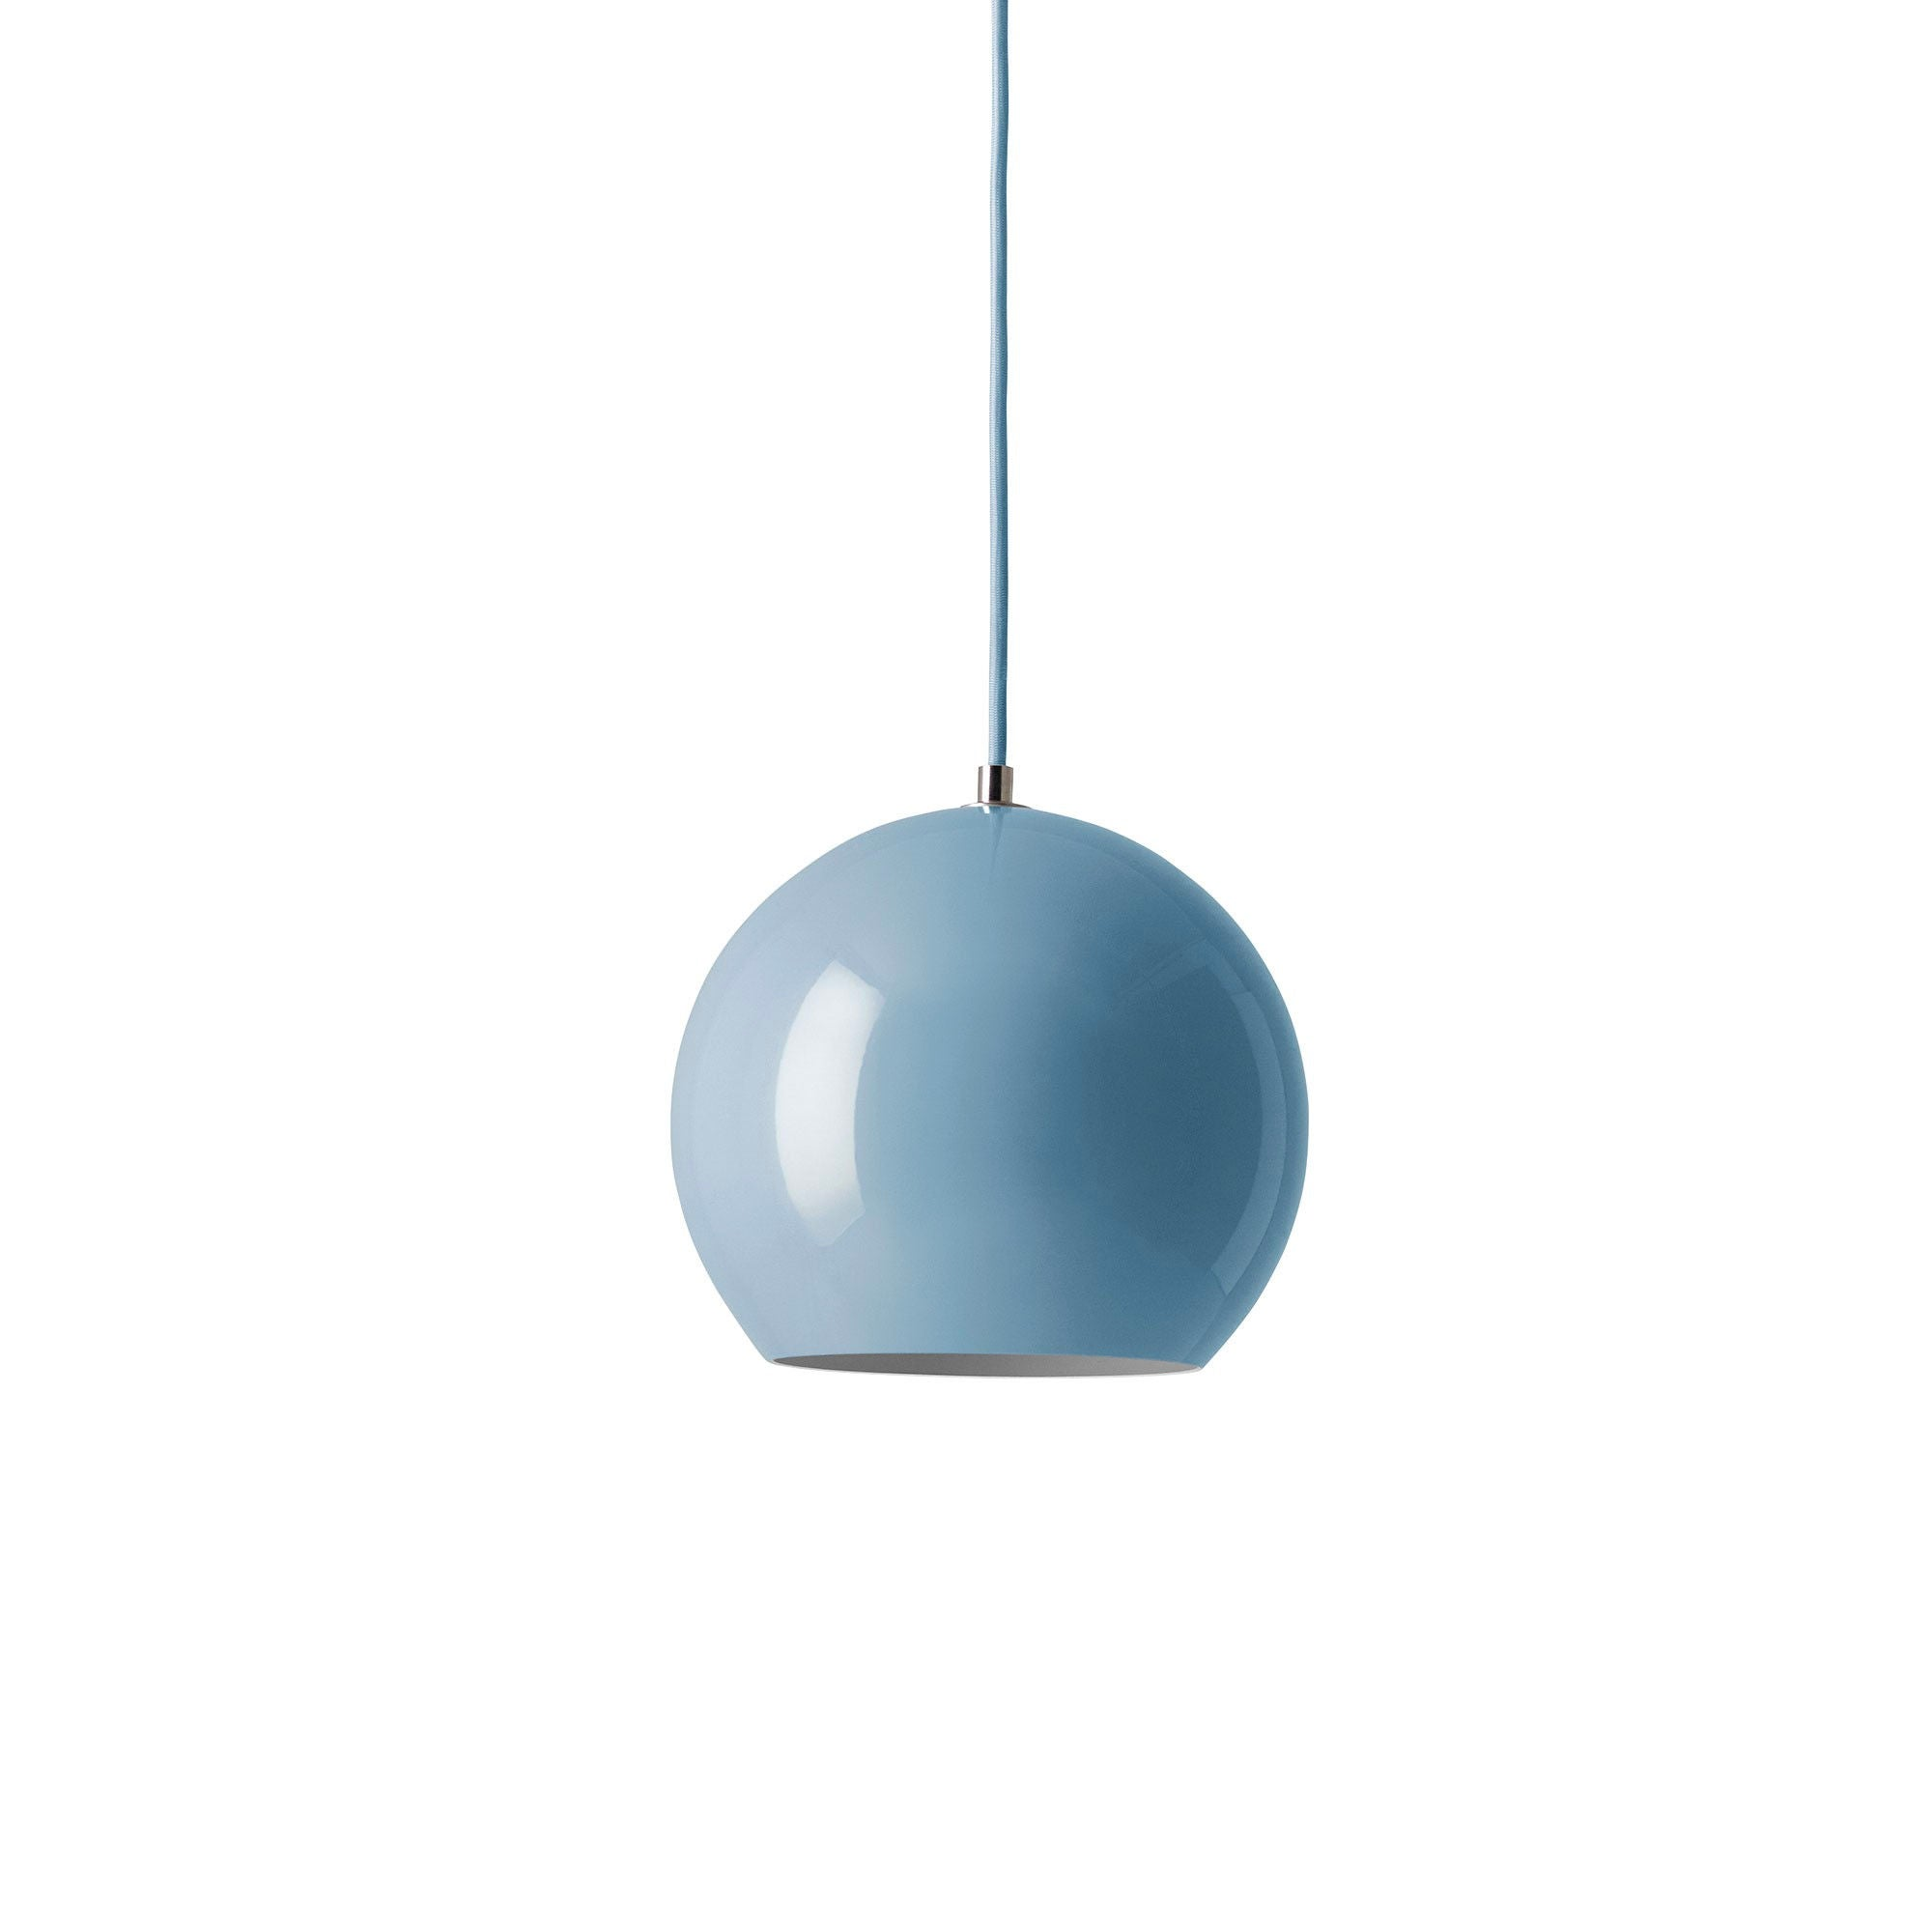 &Tradition VP6 Topan pendant lamp, light blue